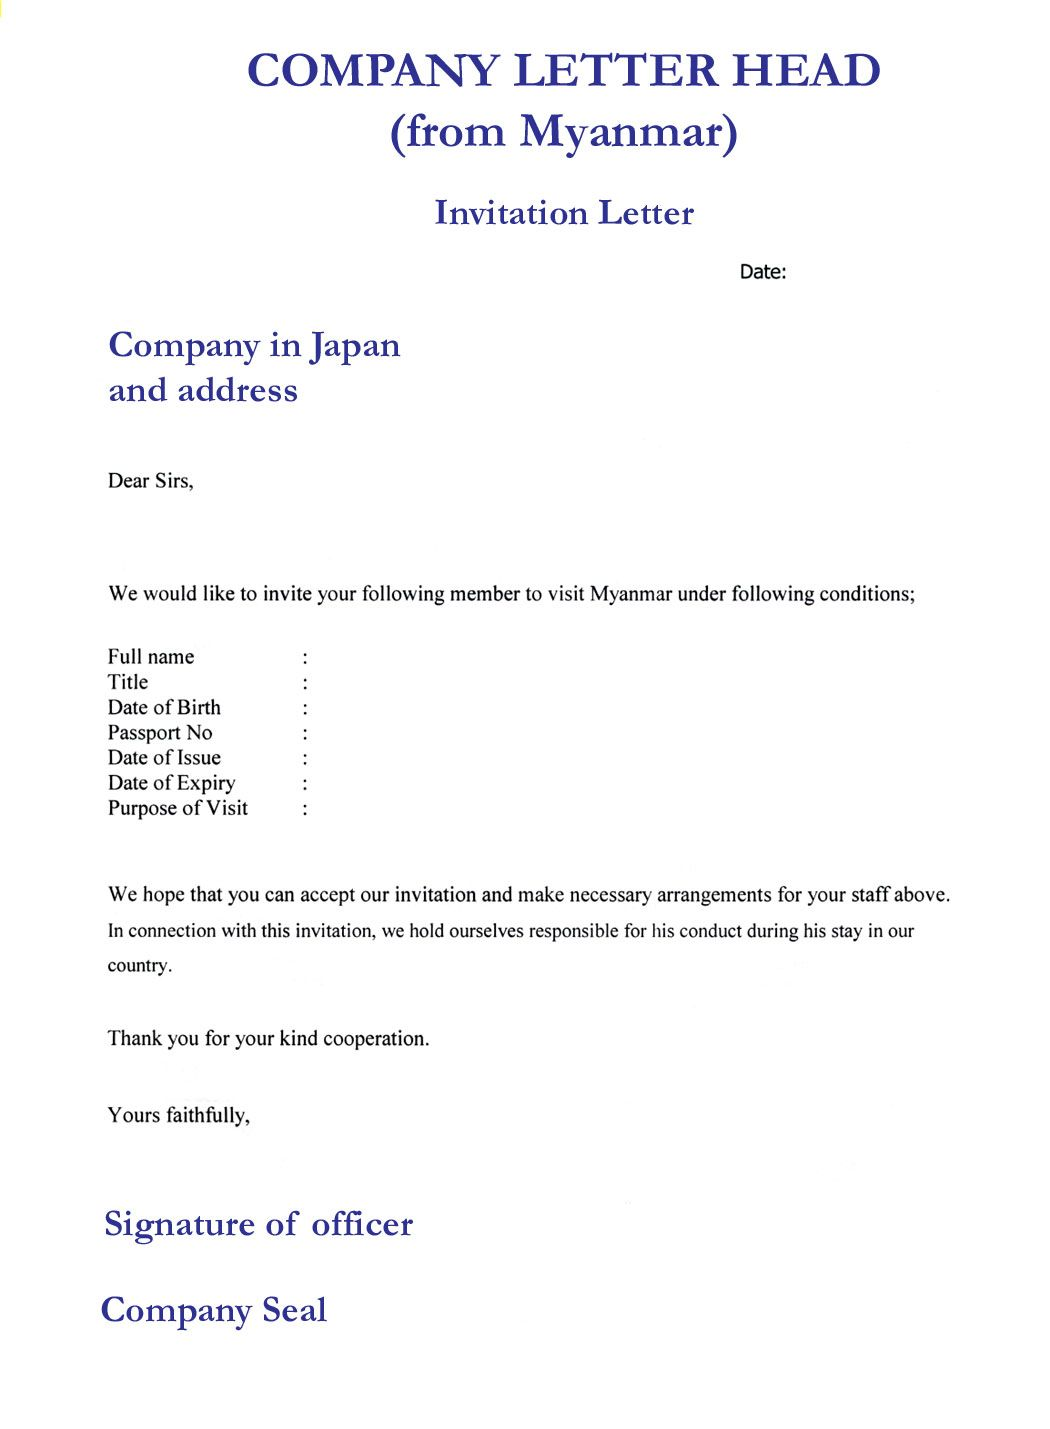 Recommendation letter for visa application its never easy asking recommendation letter for visa application its never easy asking your current boss for a letter stopboris Images